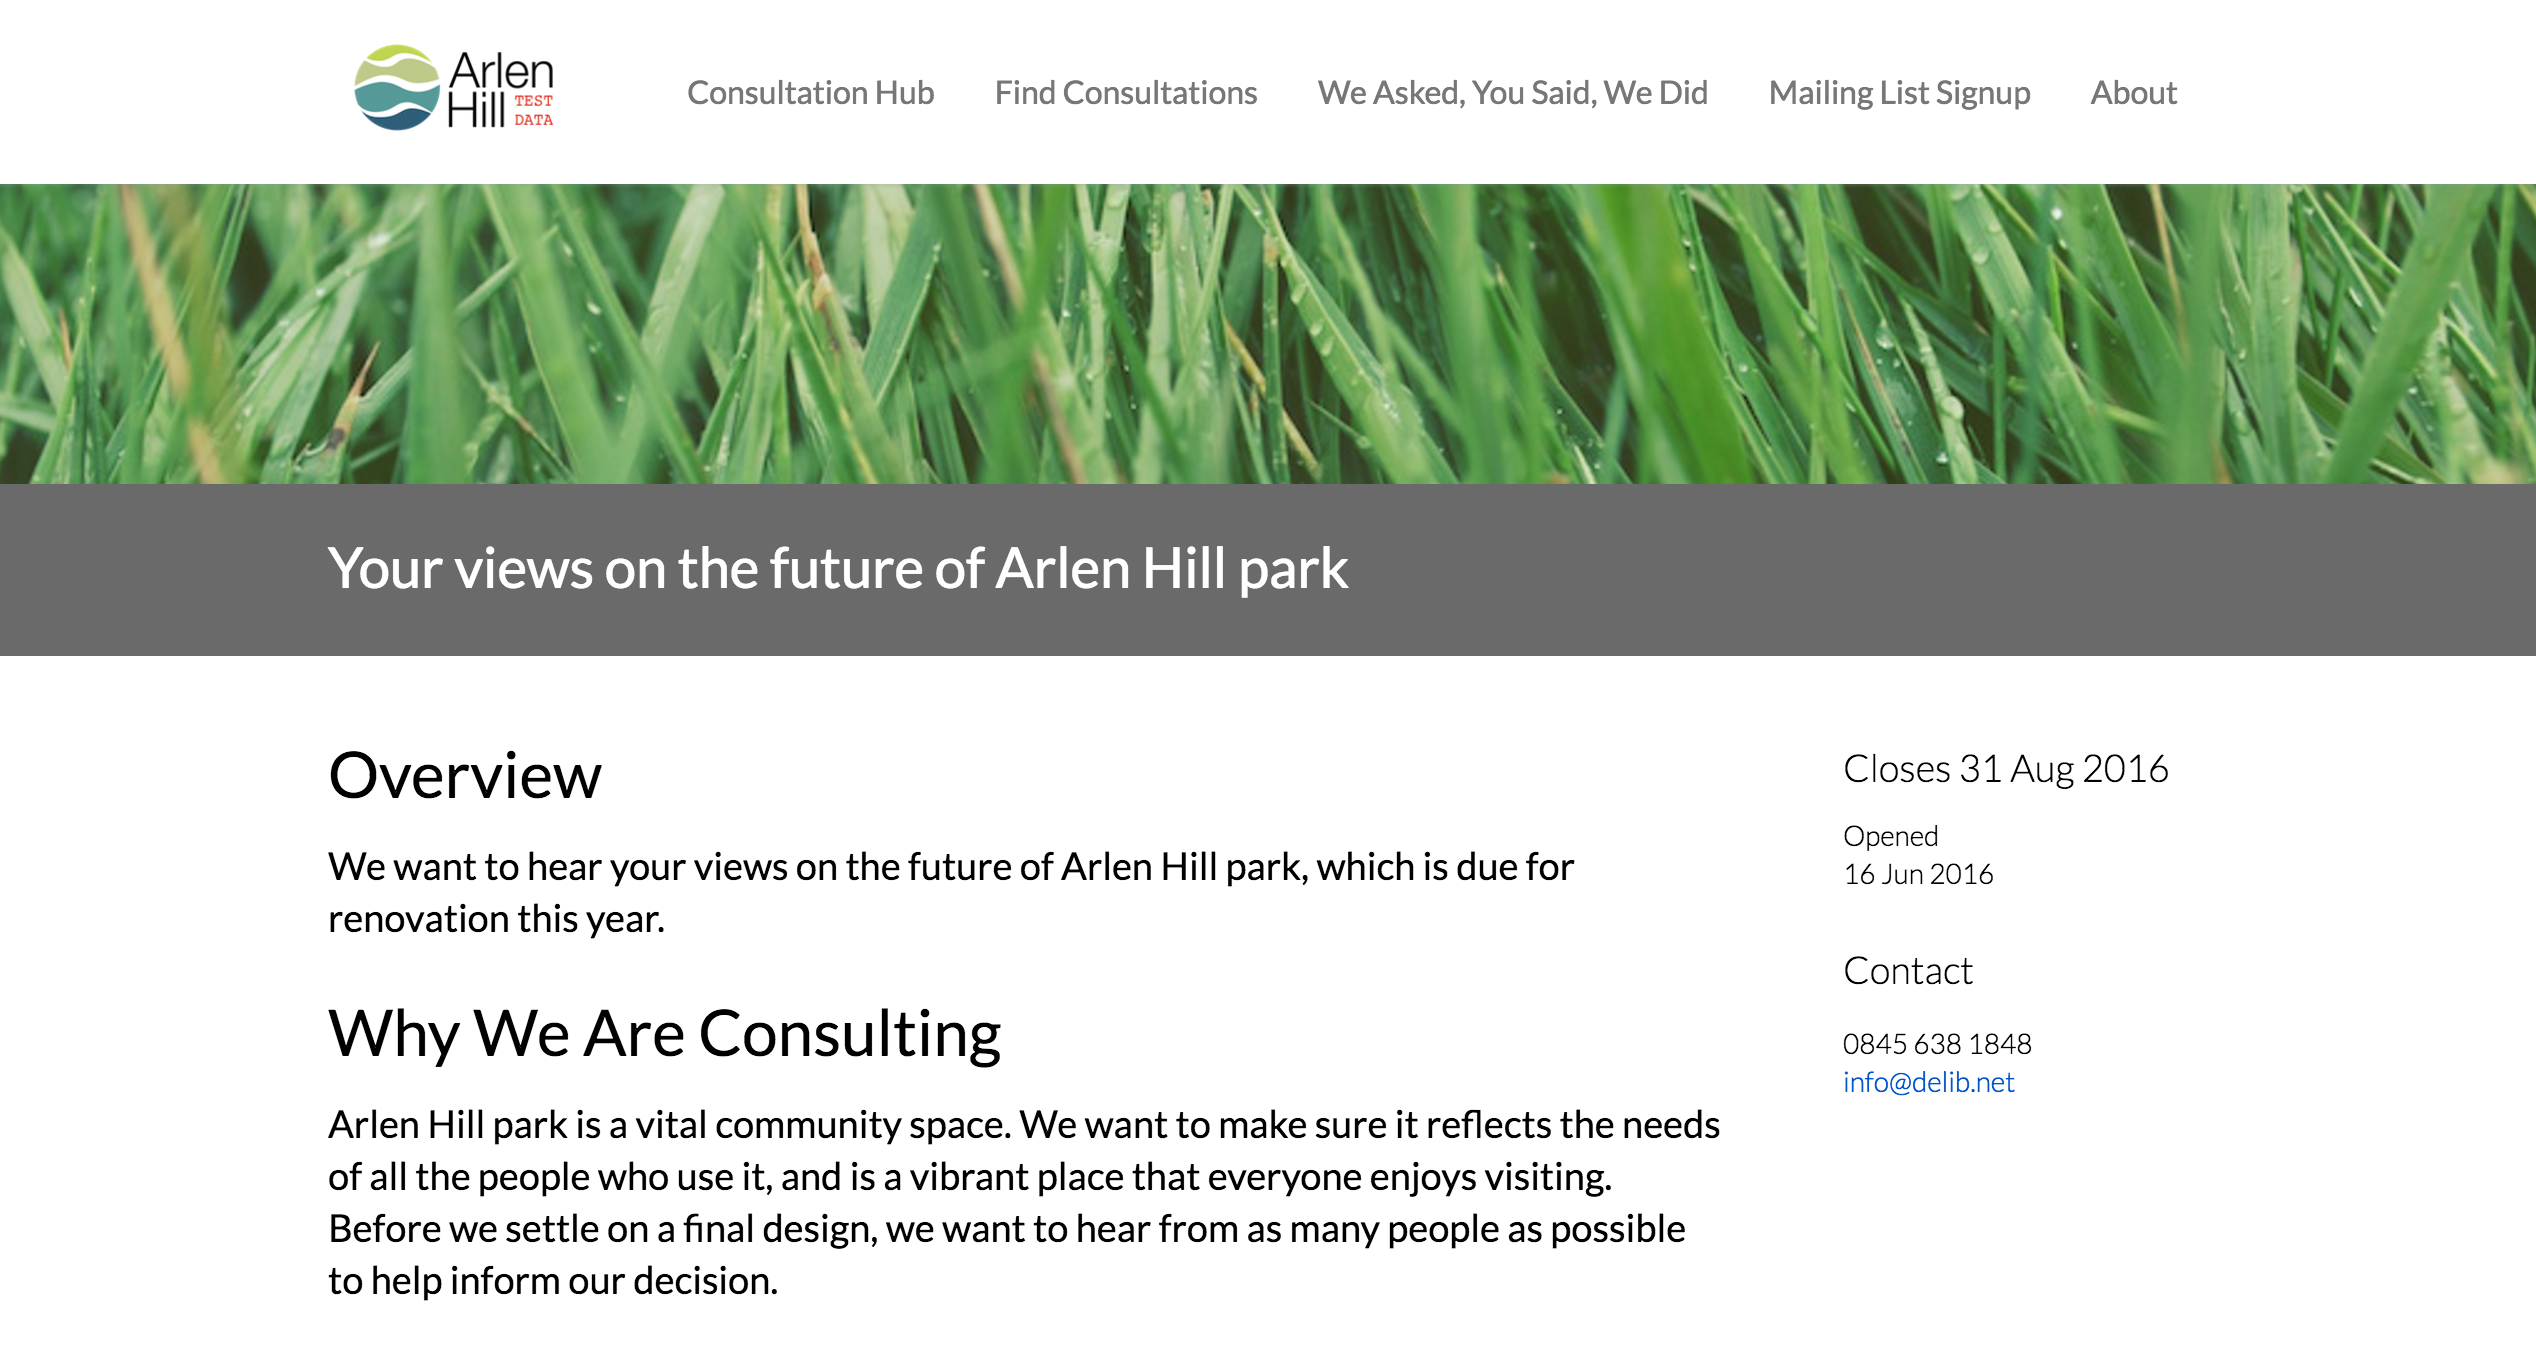 image of a consultation oveview showing a banner image of grass and the consultation title in grey